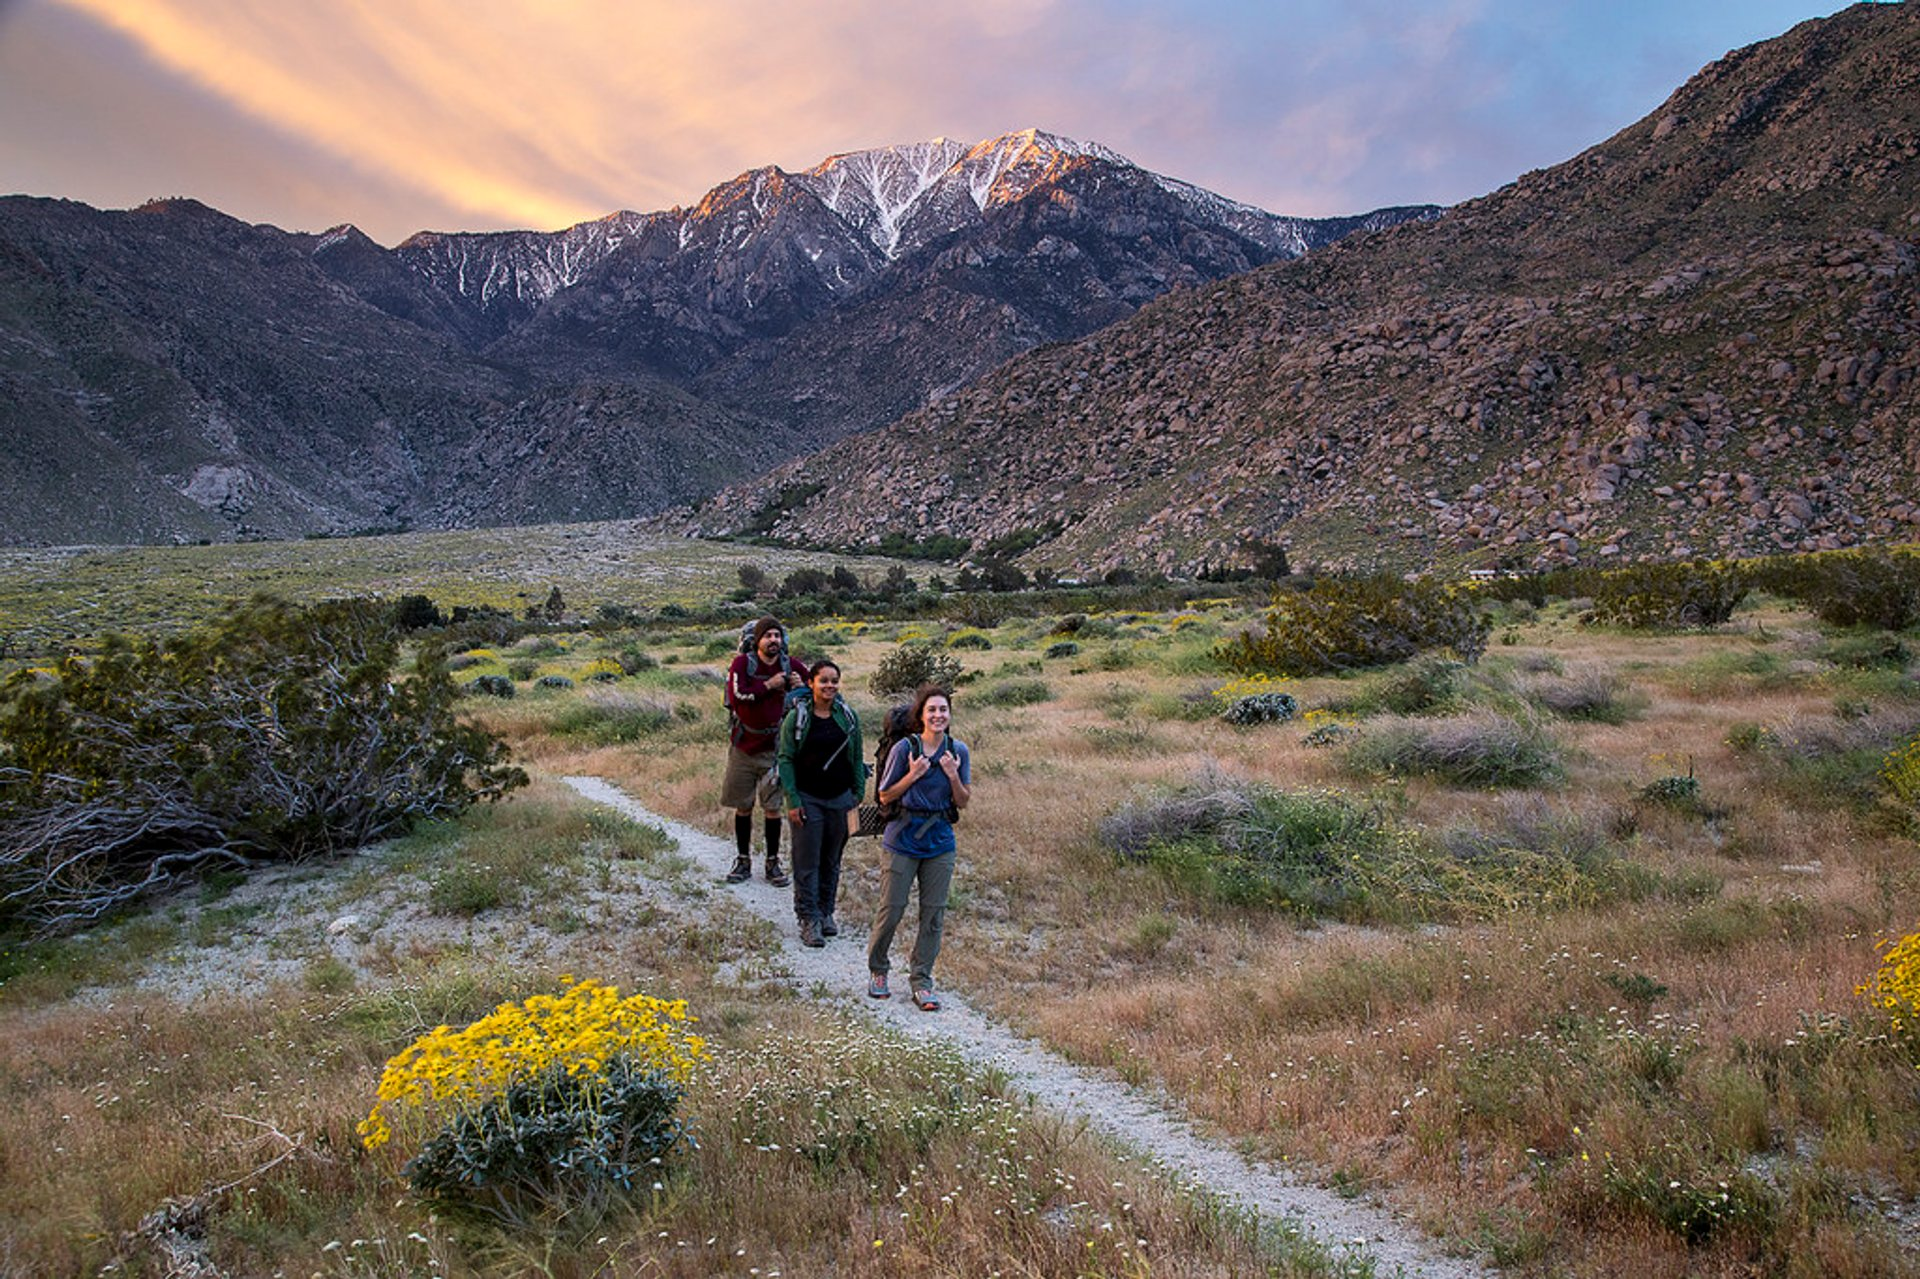 Pacific Crest Trail in California - Best Season 2020